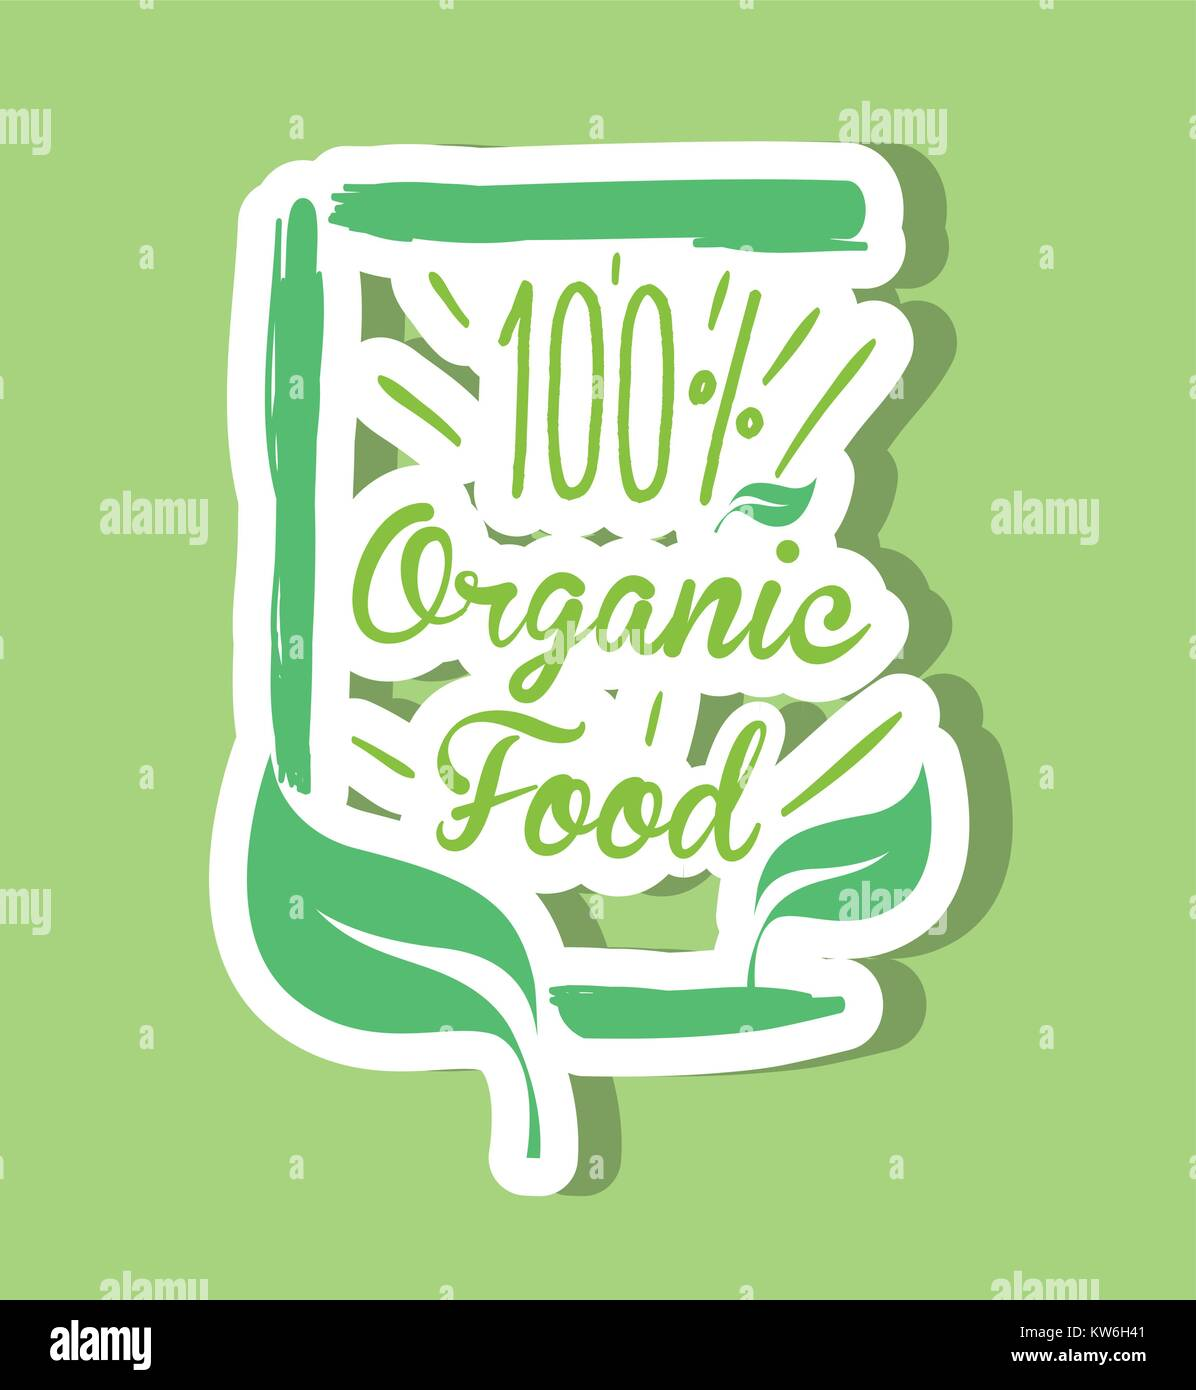 one hundred percent organic food message vector illustration - Stock Vector